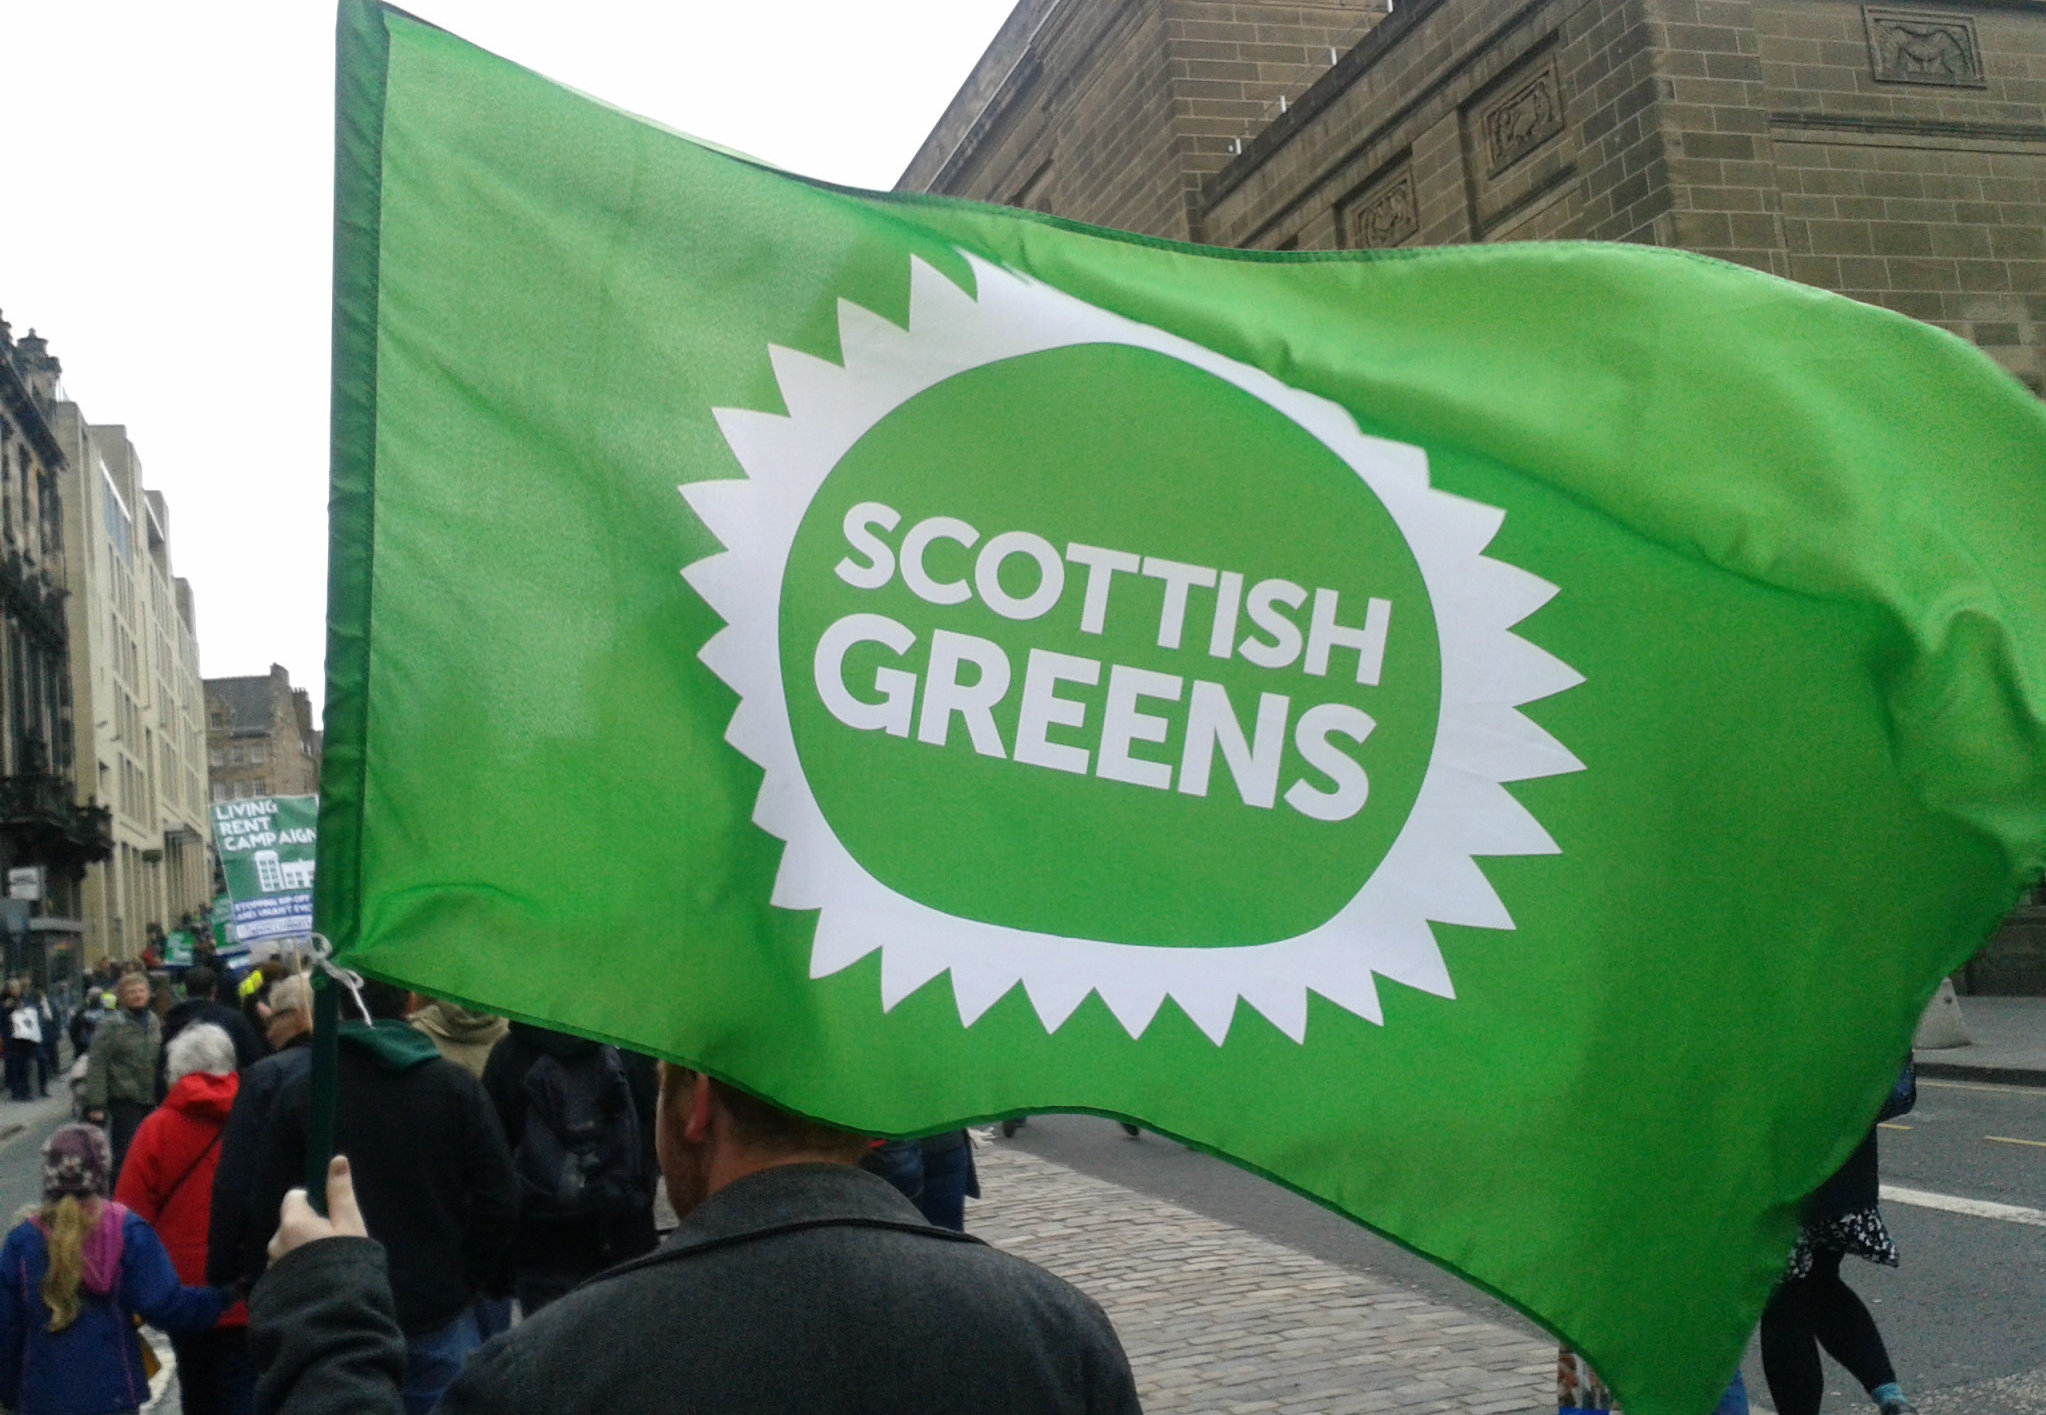 While other parties posture, the Scottish Greens are making Scotland a fairer place